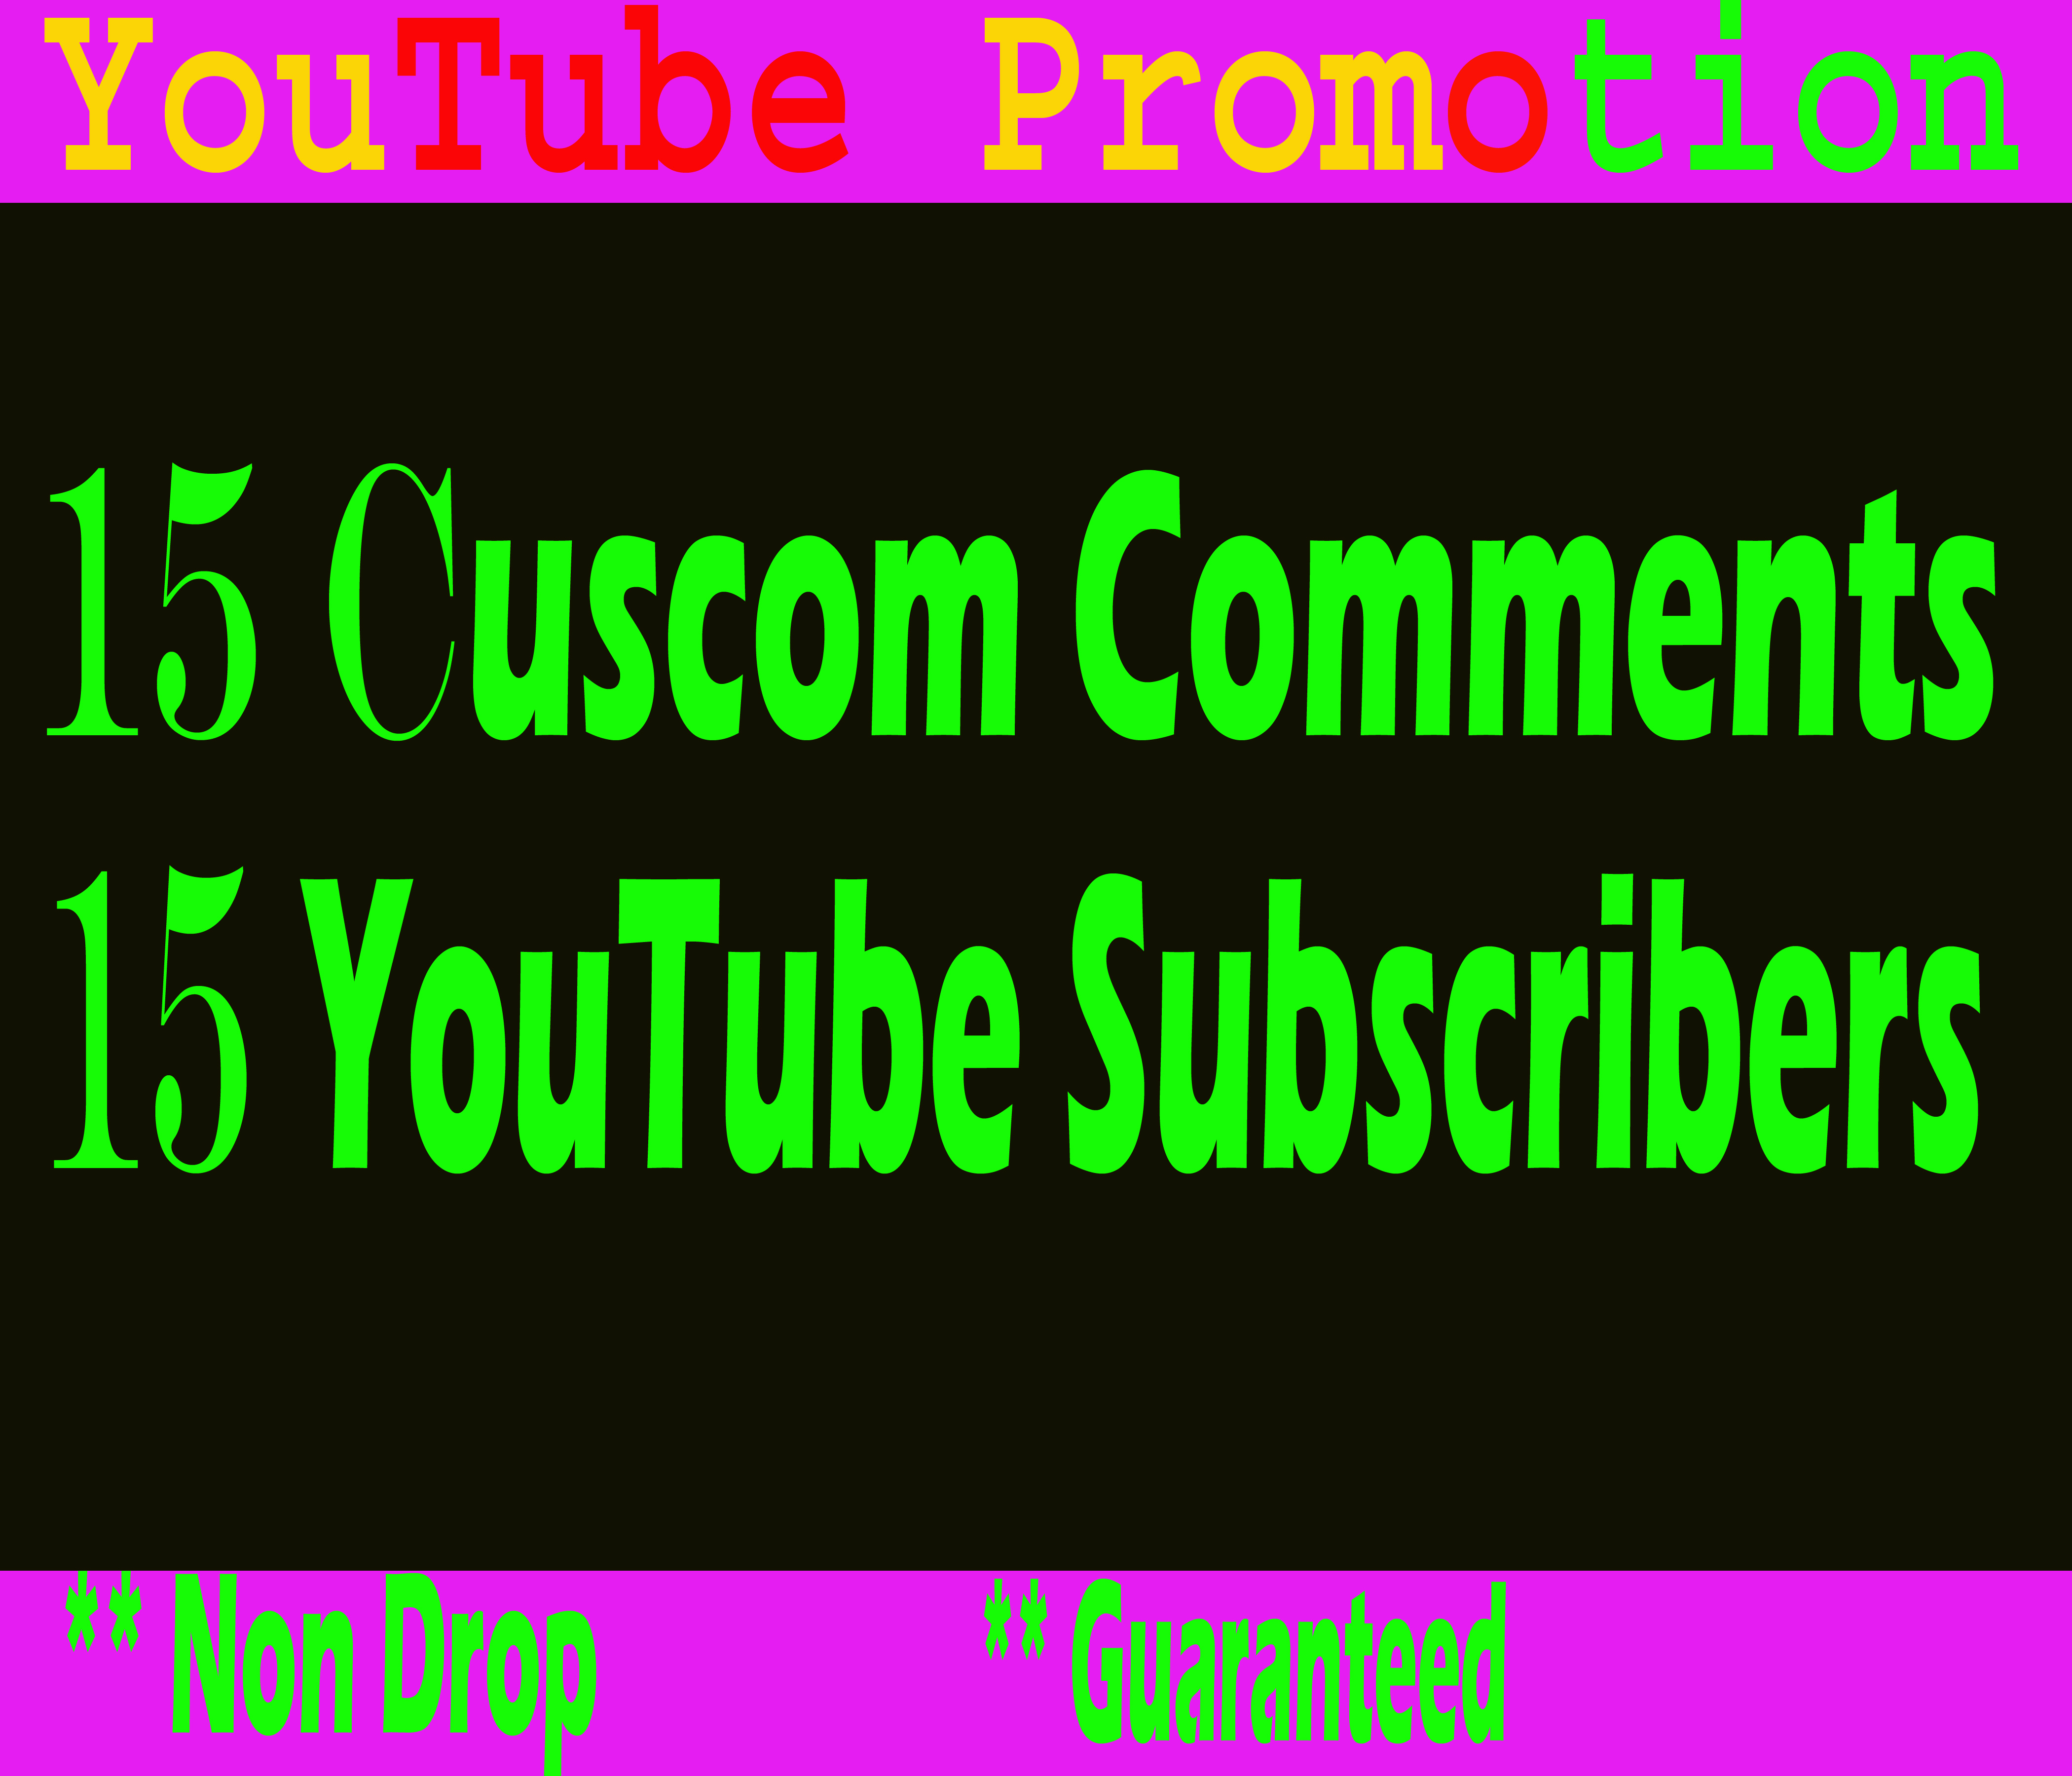 Guaranteed 15 YouTube comments and 15 subscribers